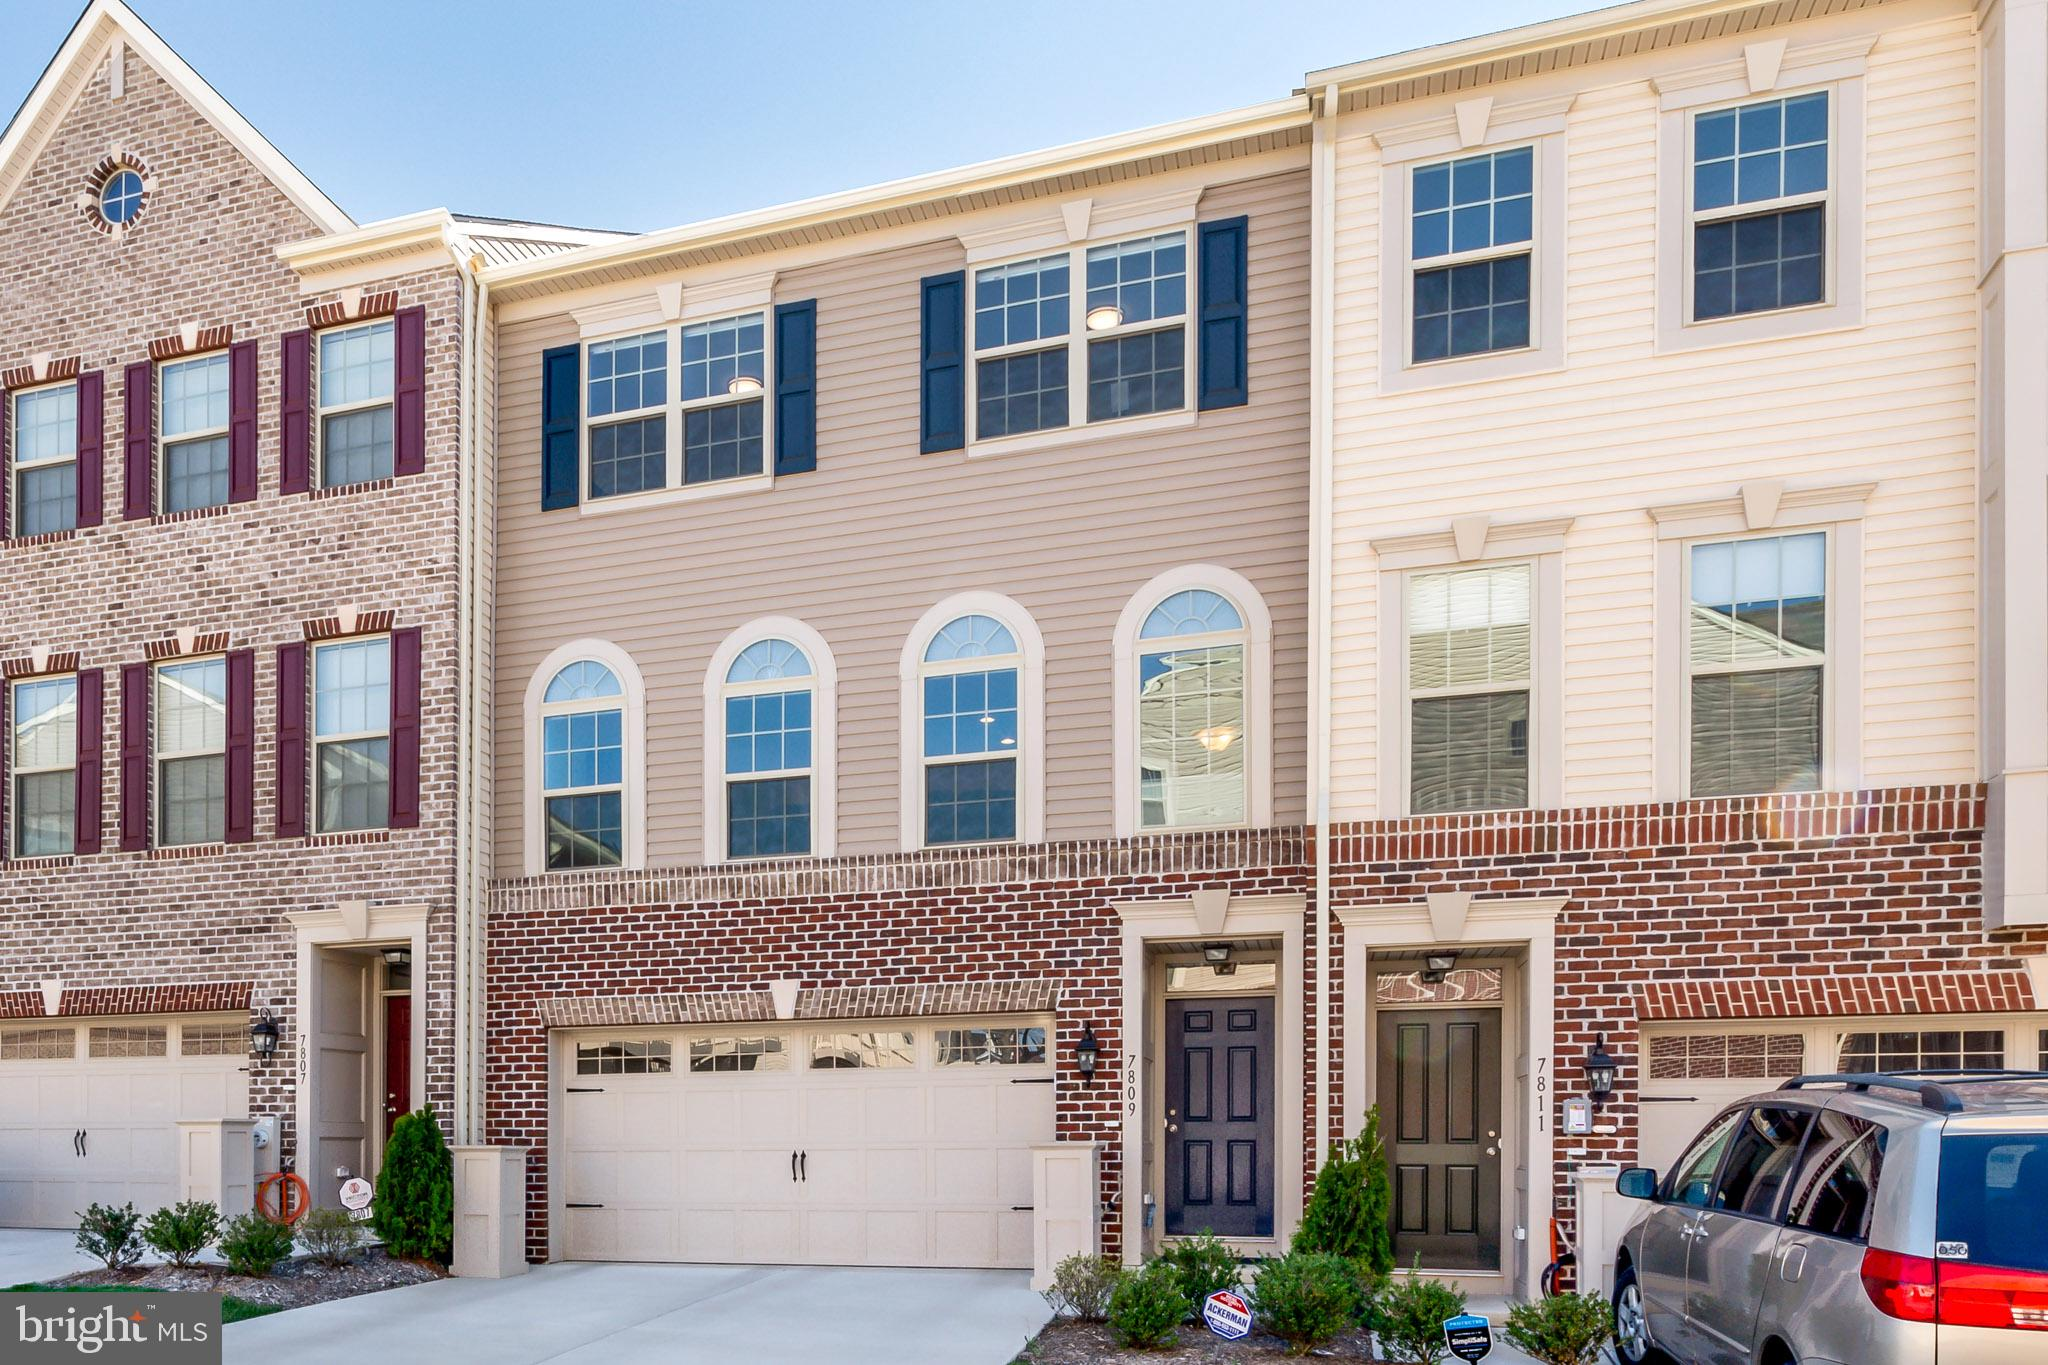 7809 RAPPAPORT DRIVE, JESSUP, MD 20794